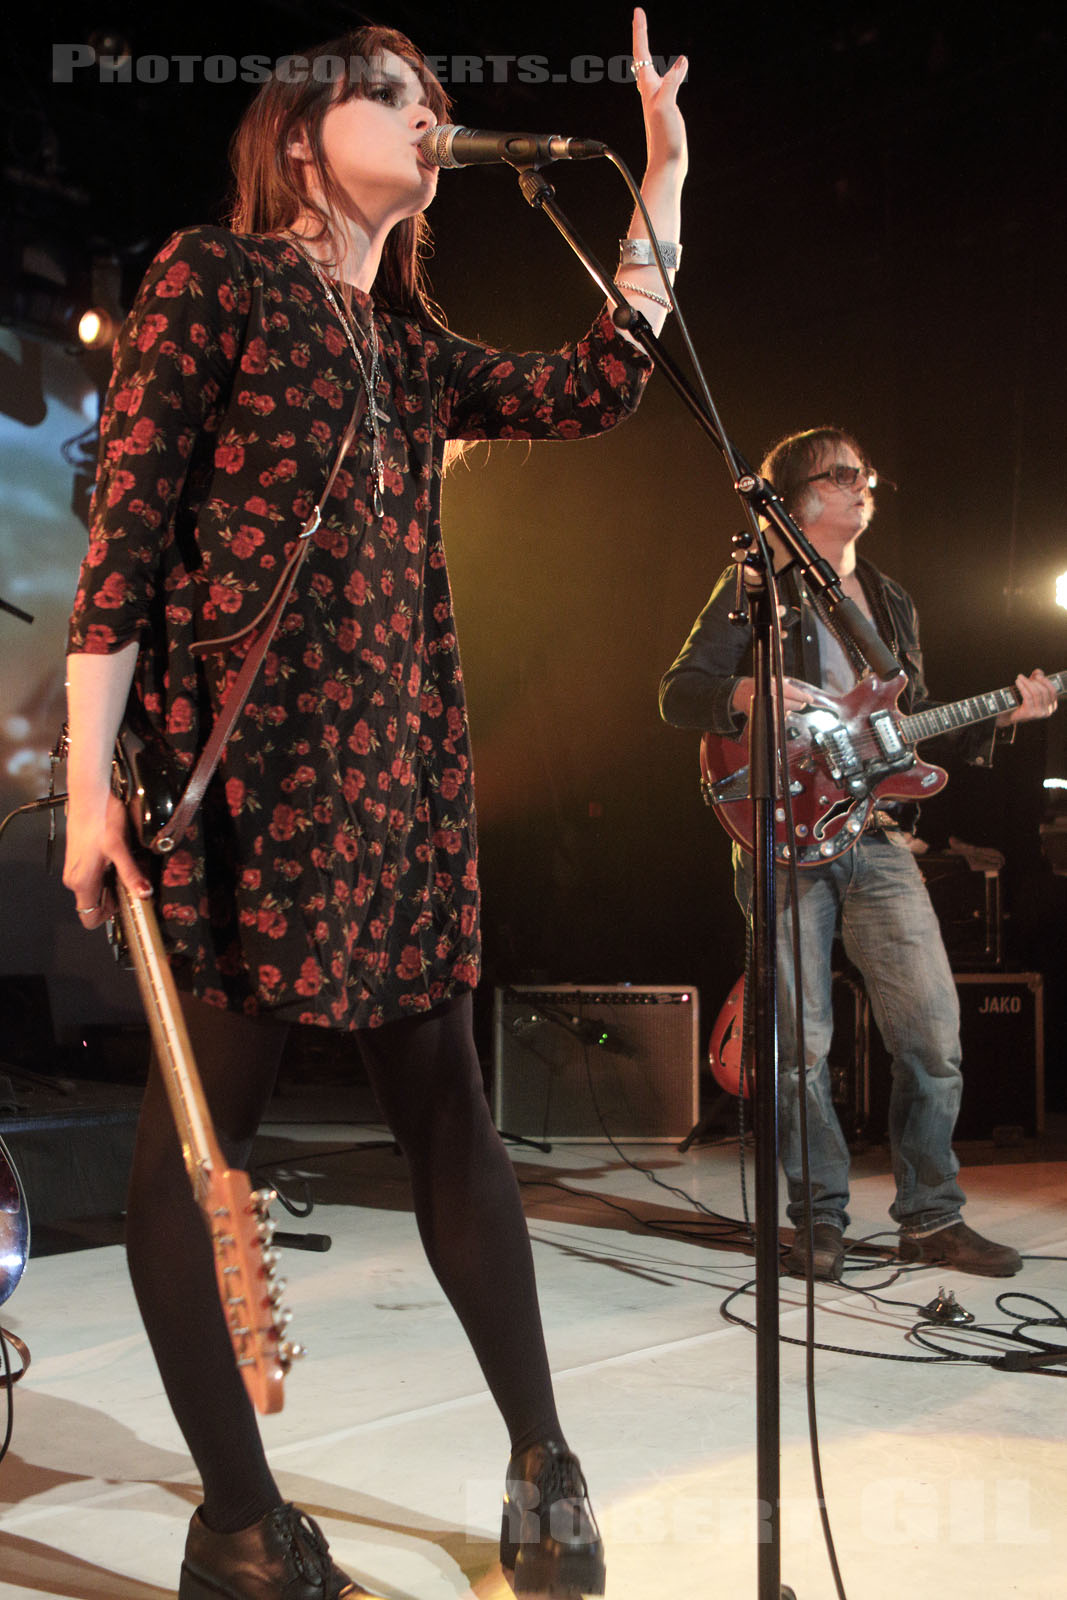 TESS PARKS AND ANTON NEWCOMBE - 2015-09-19 - ANGERS - Le Chabada